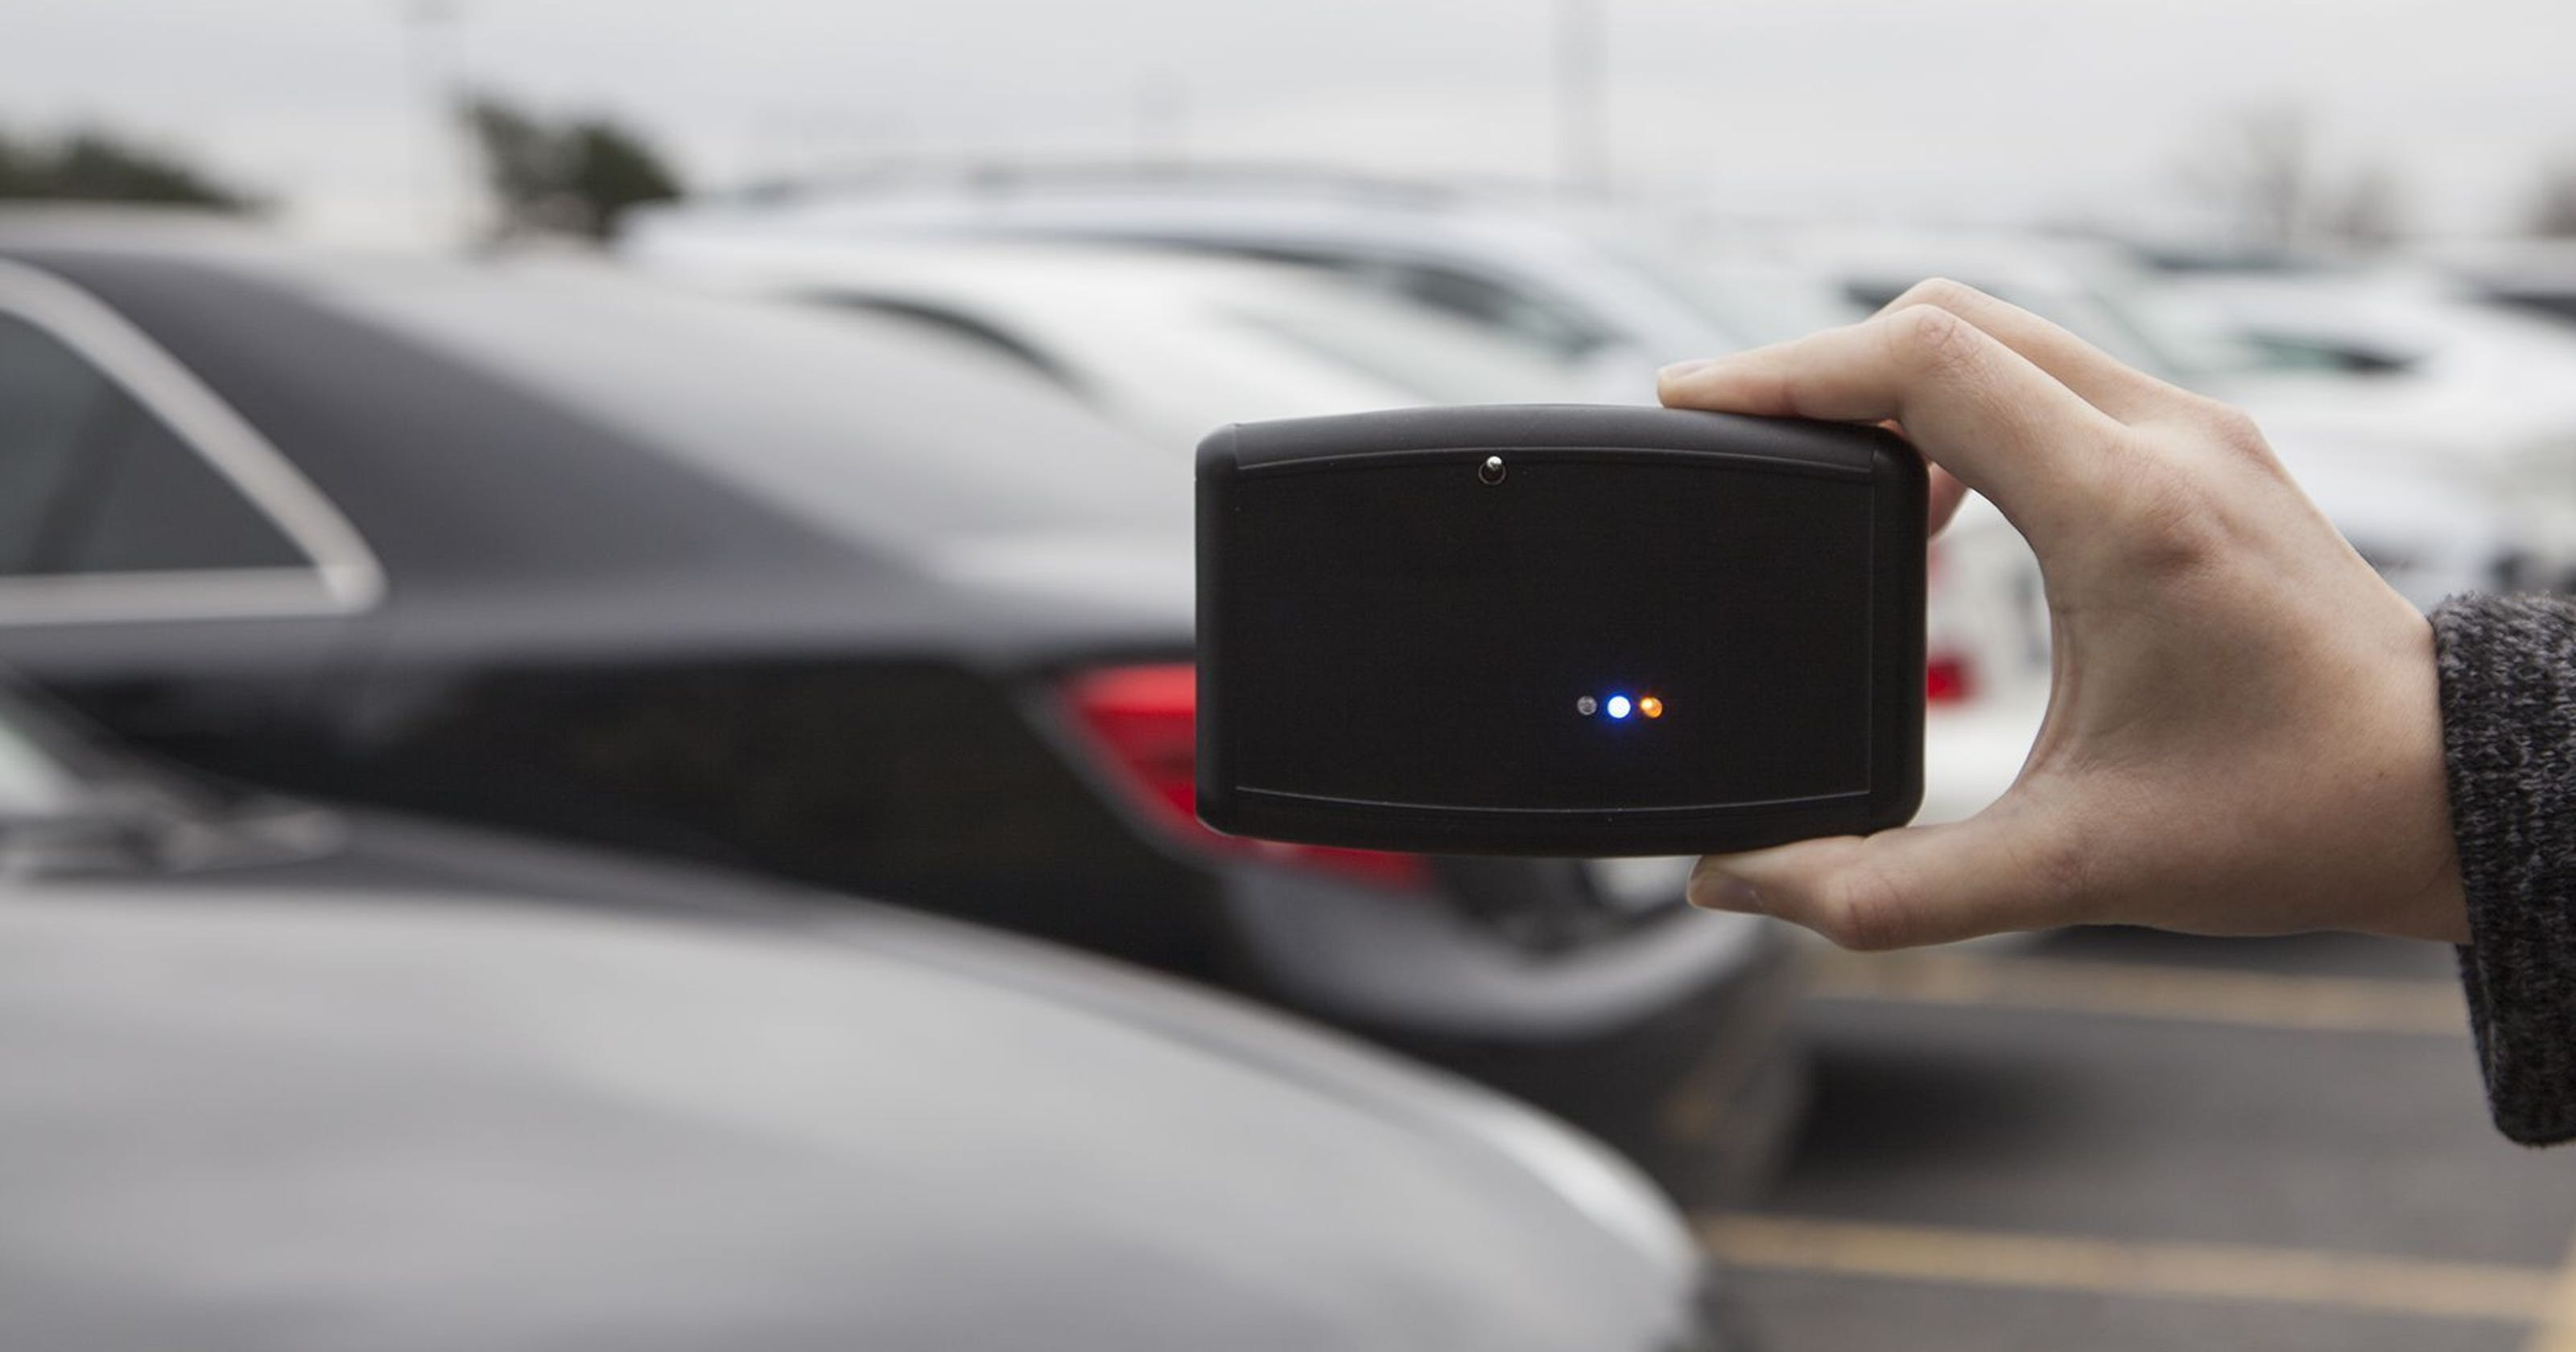 This device may allow a thief to steal your car